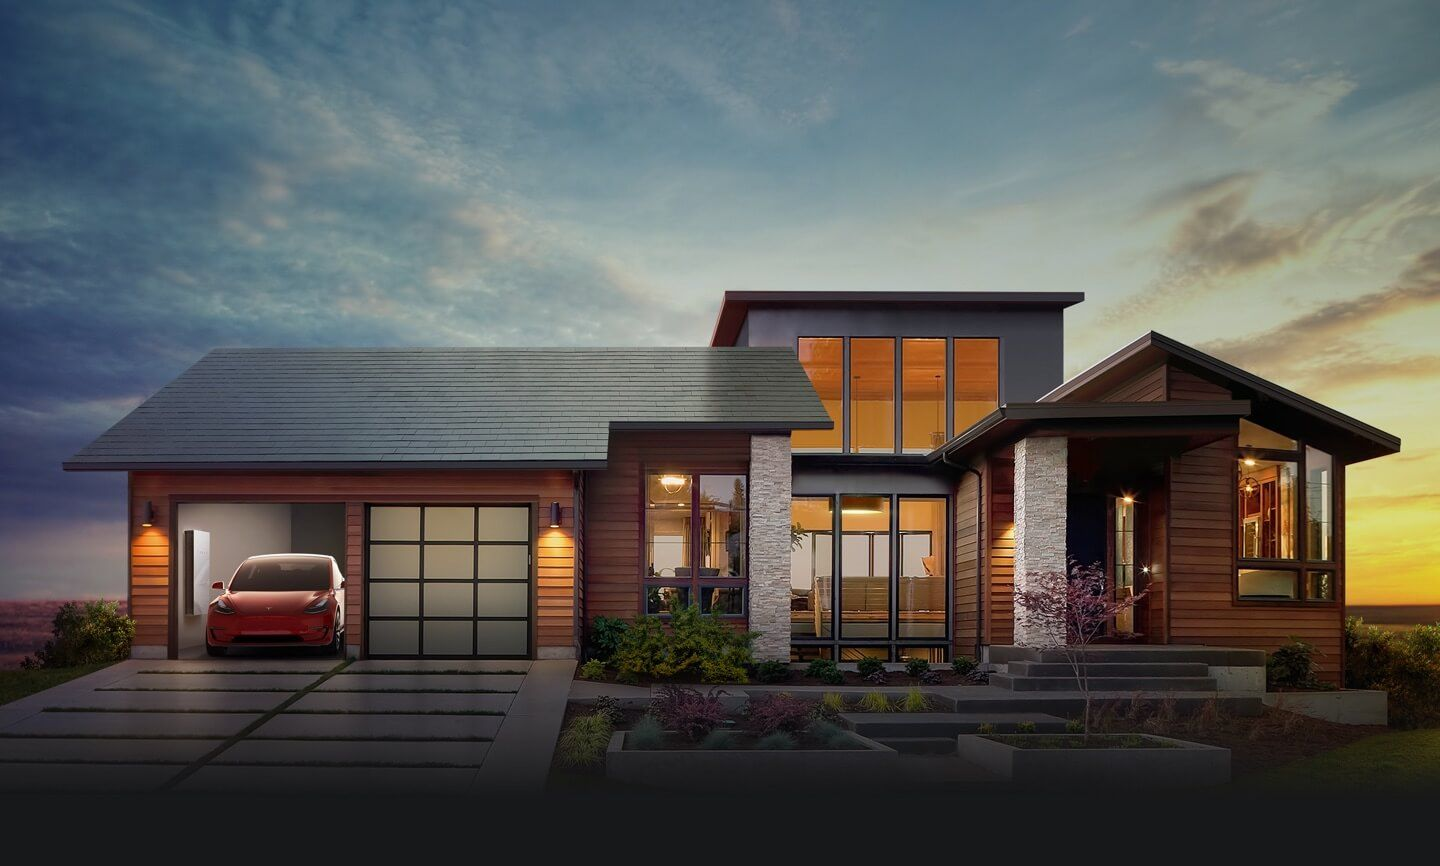 Pin by nathan chase on new house dreams pinterest solar solar